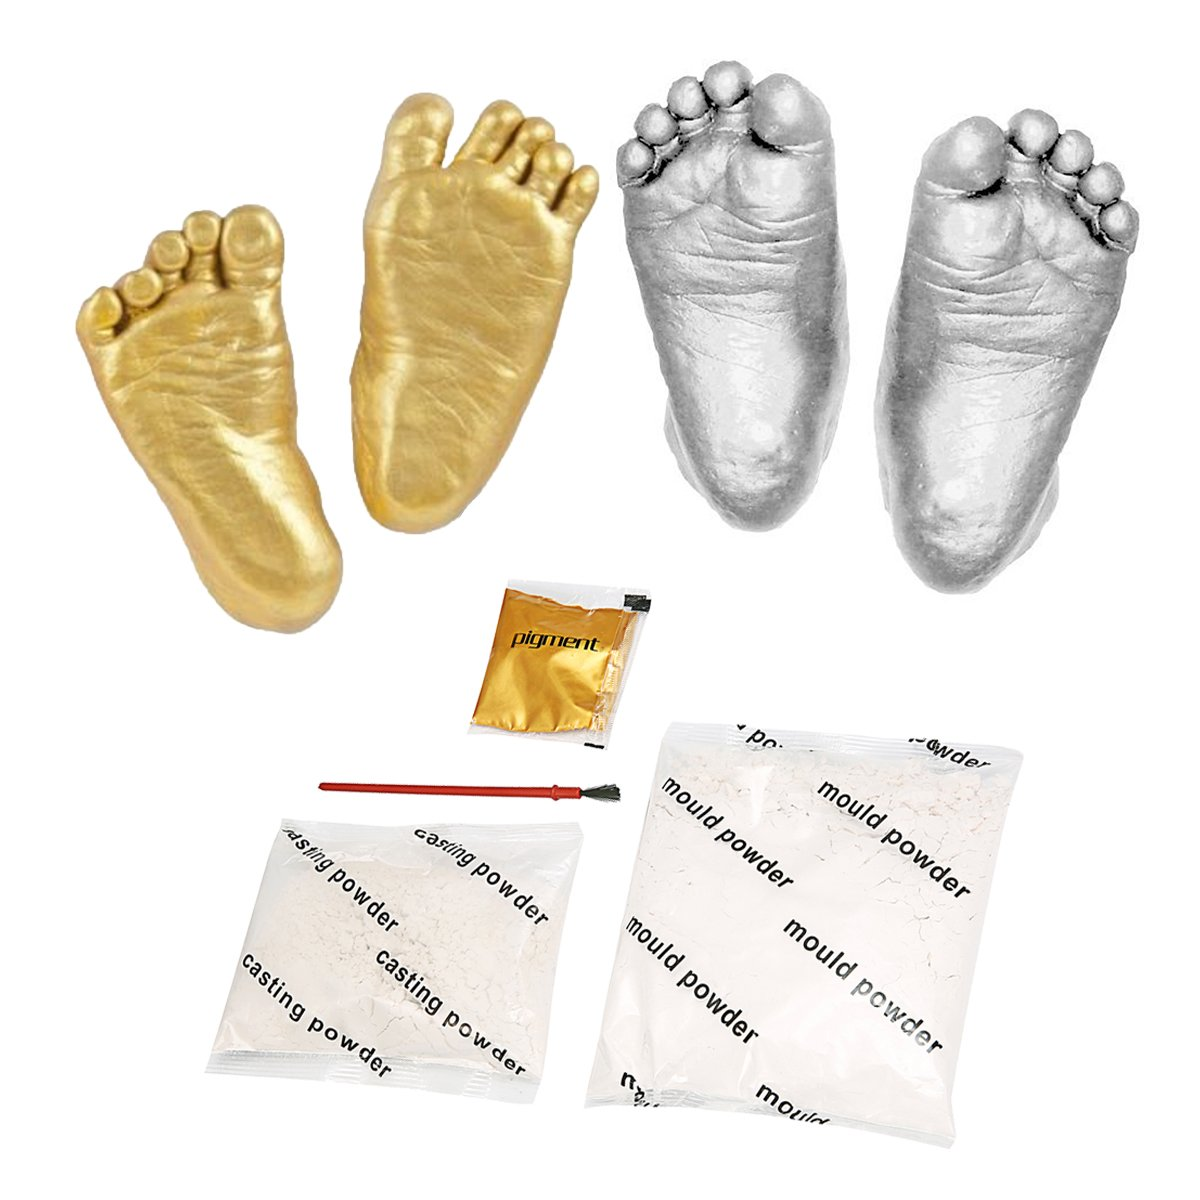 Essort 3D Plaster Casting Kit, Memorable Keepsakes, Baby Casting Kit, Baby Handprint Footprint Keepsake, Casting Plaster, Metallic Pewter Paint ESSORTLK13UW1620